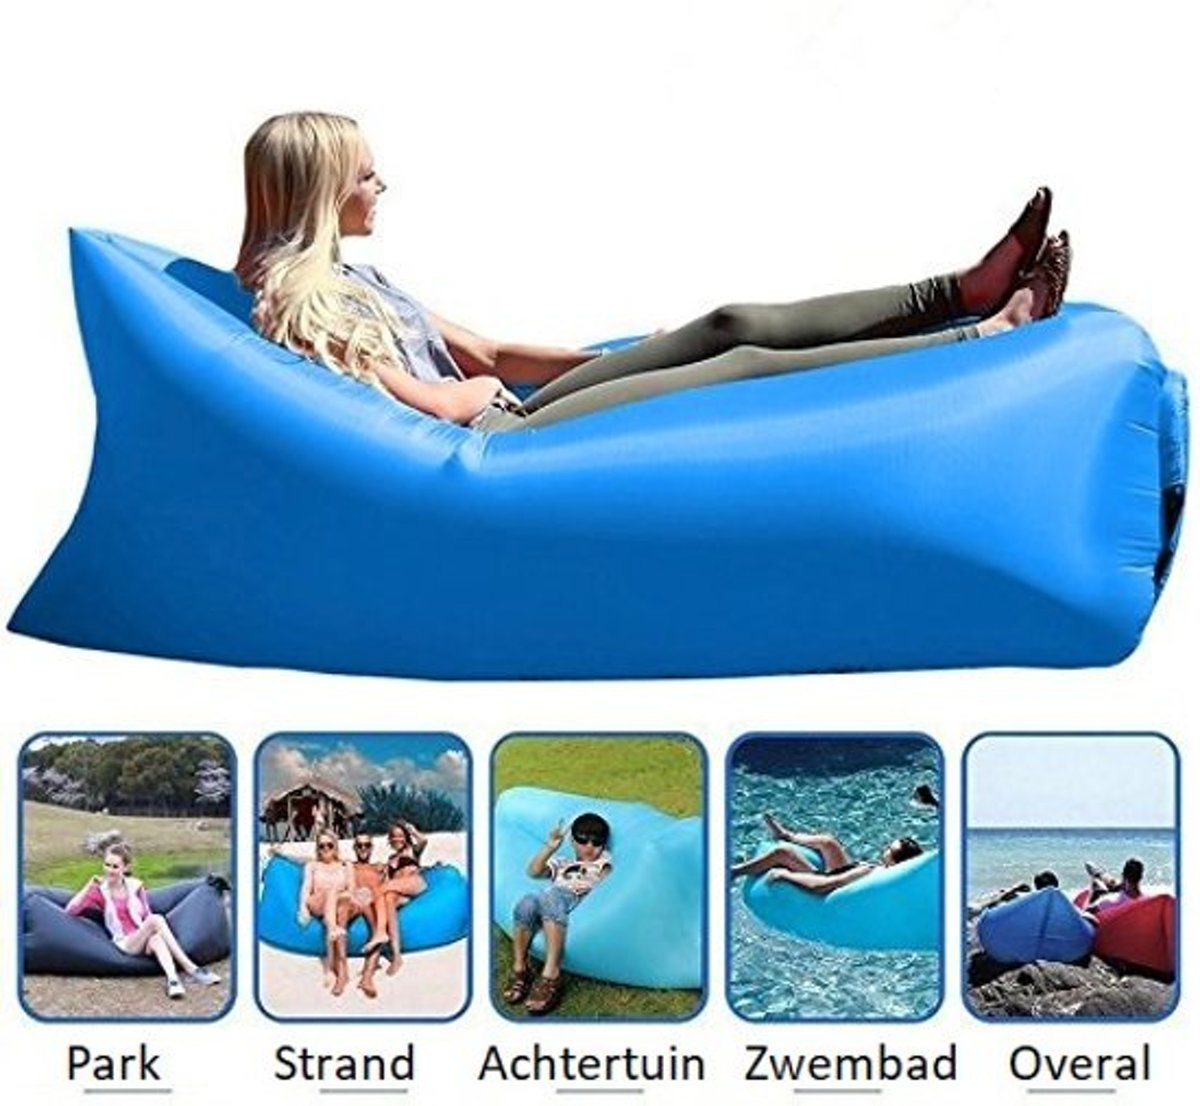 Opblaasbare Zitzak – Chill Lounge & Lazy Bag / Ligbed / Luchtbed – Ligstoel voor o.a. Strand - Blauw